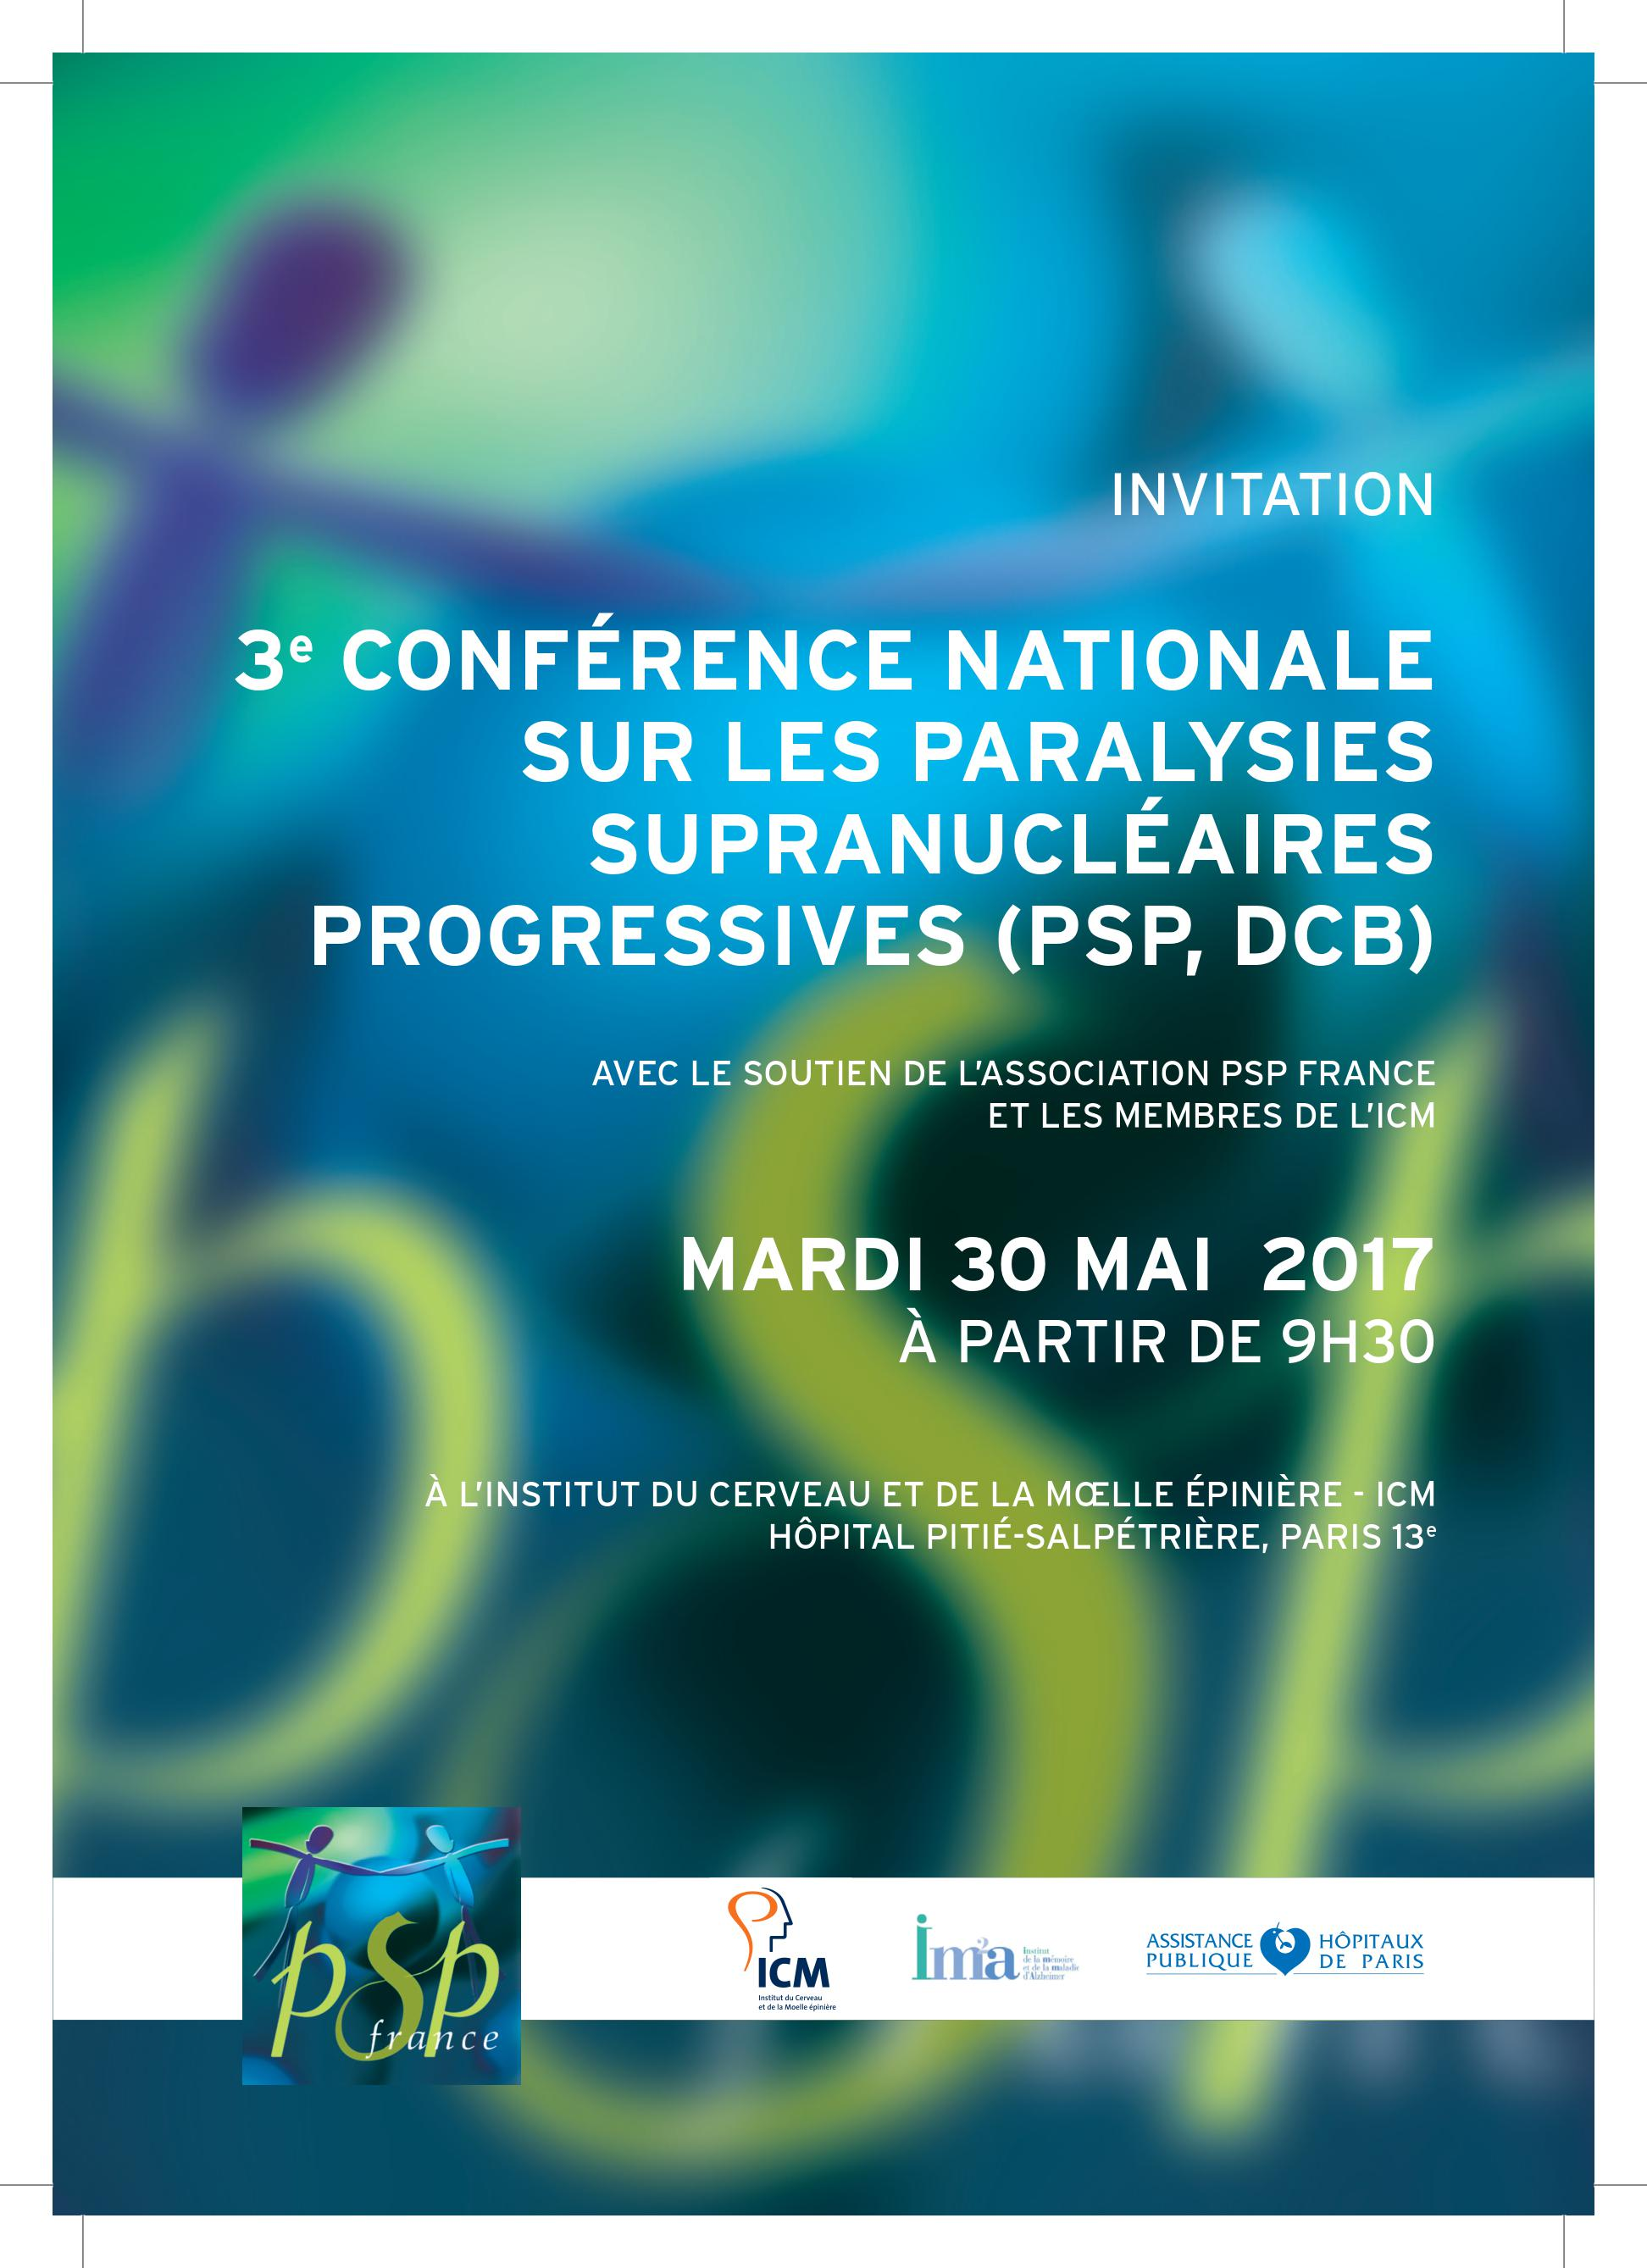 3rd Congress on Progressive Supranuclear Palsy (PSP)-image